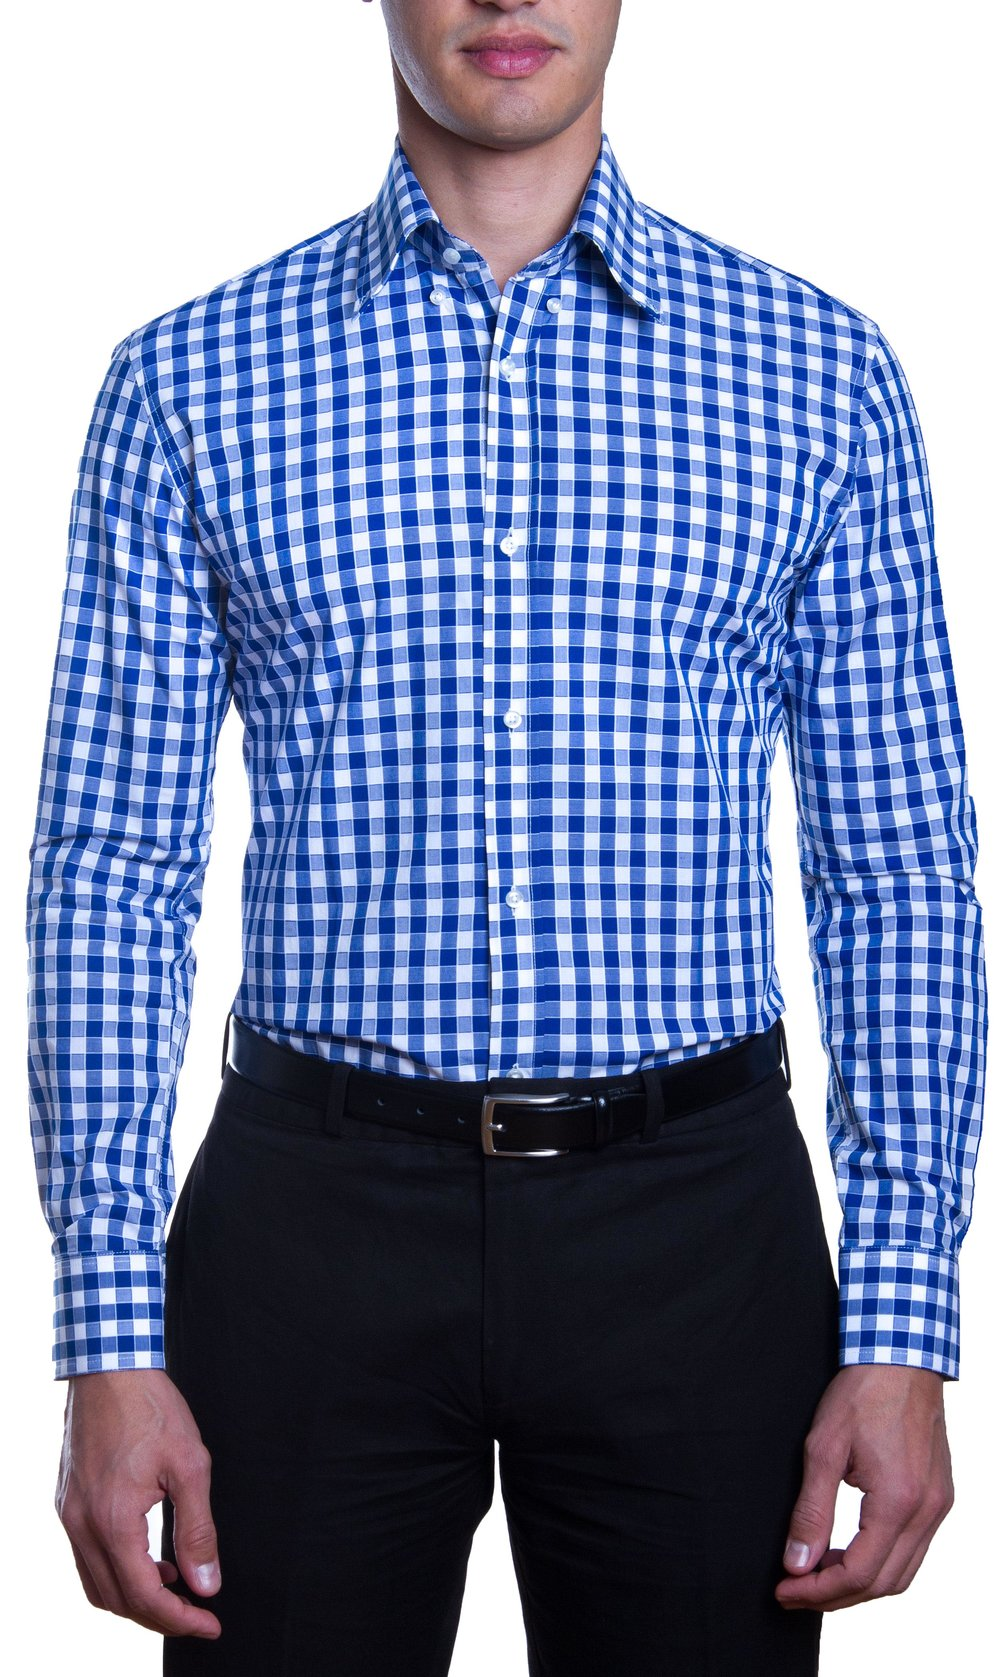 Classic Blue and White Gingham